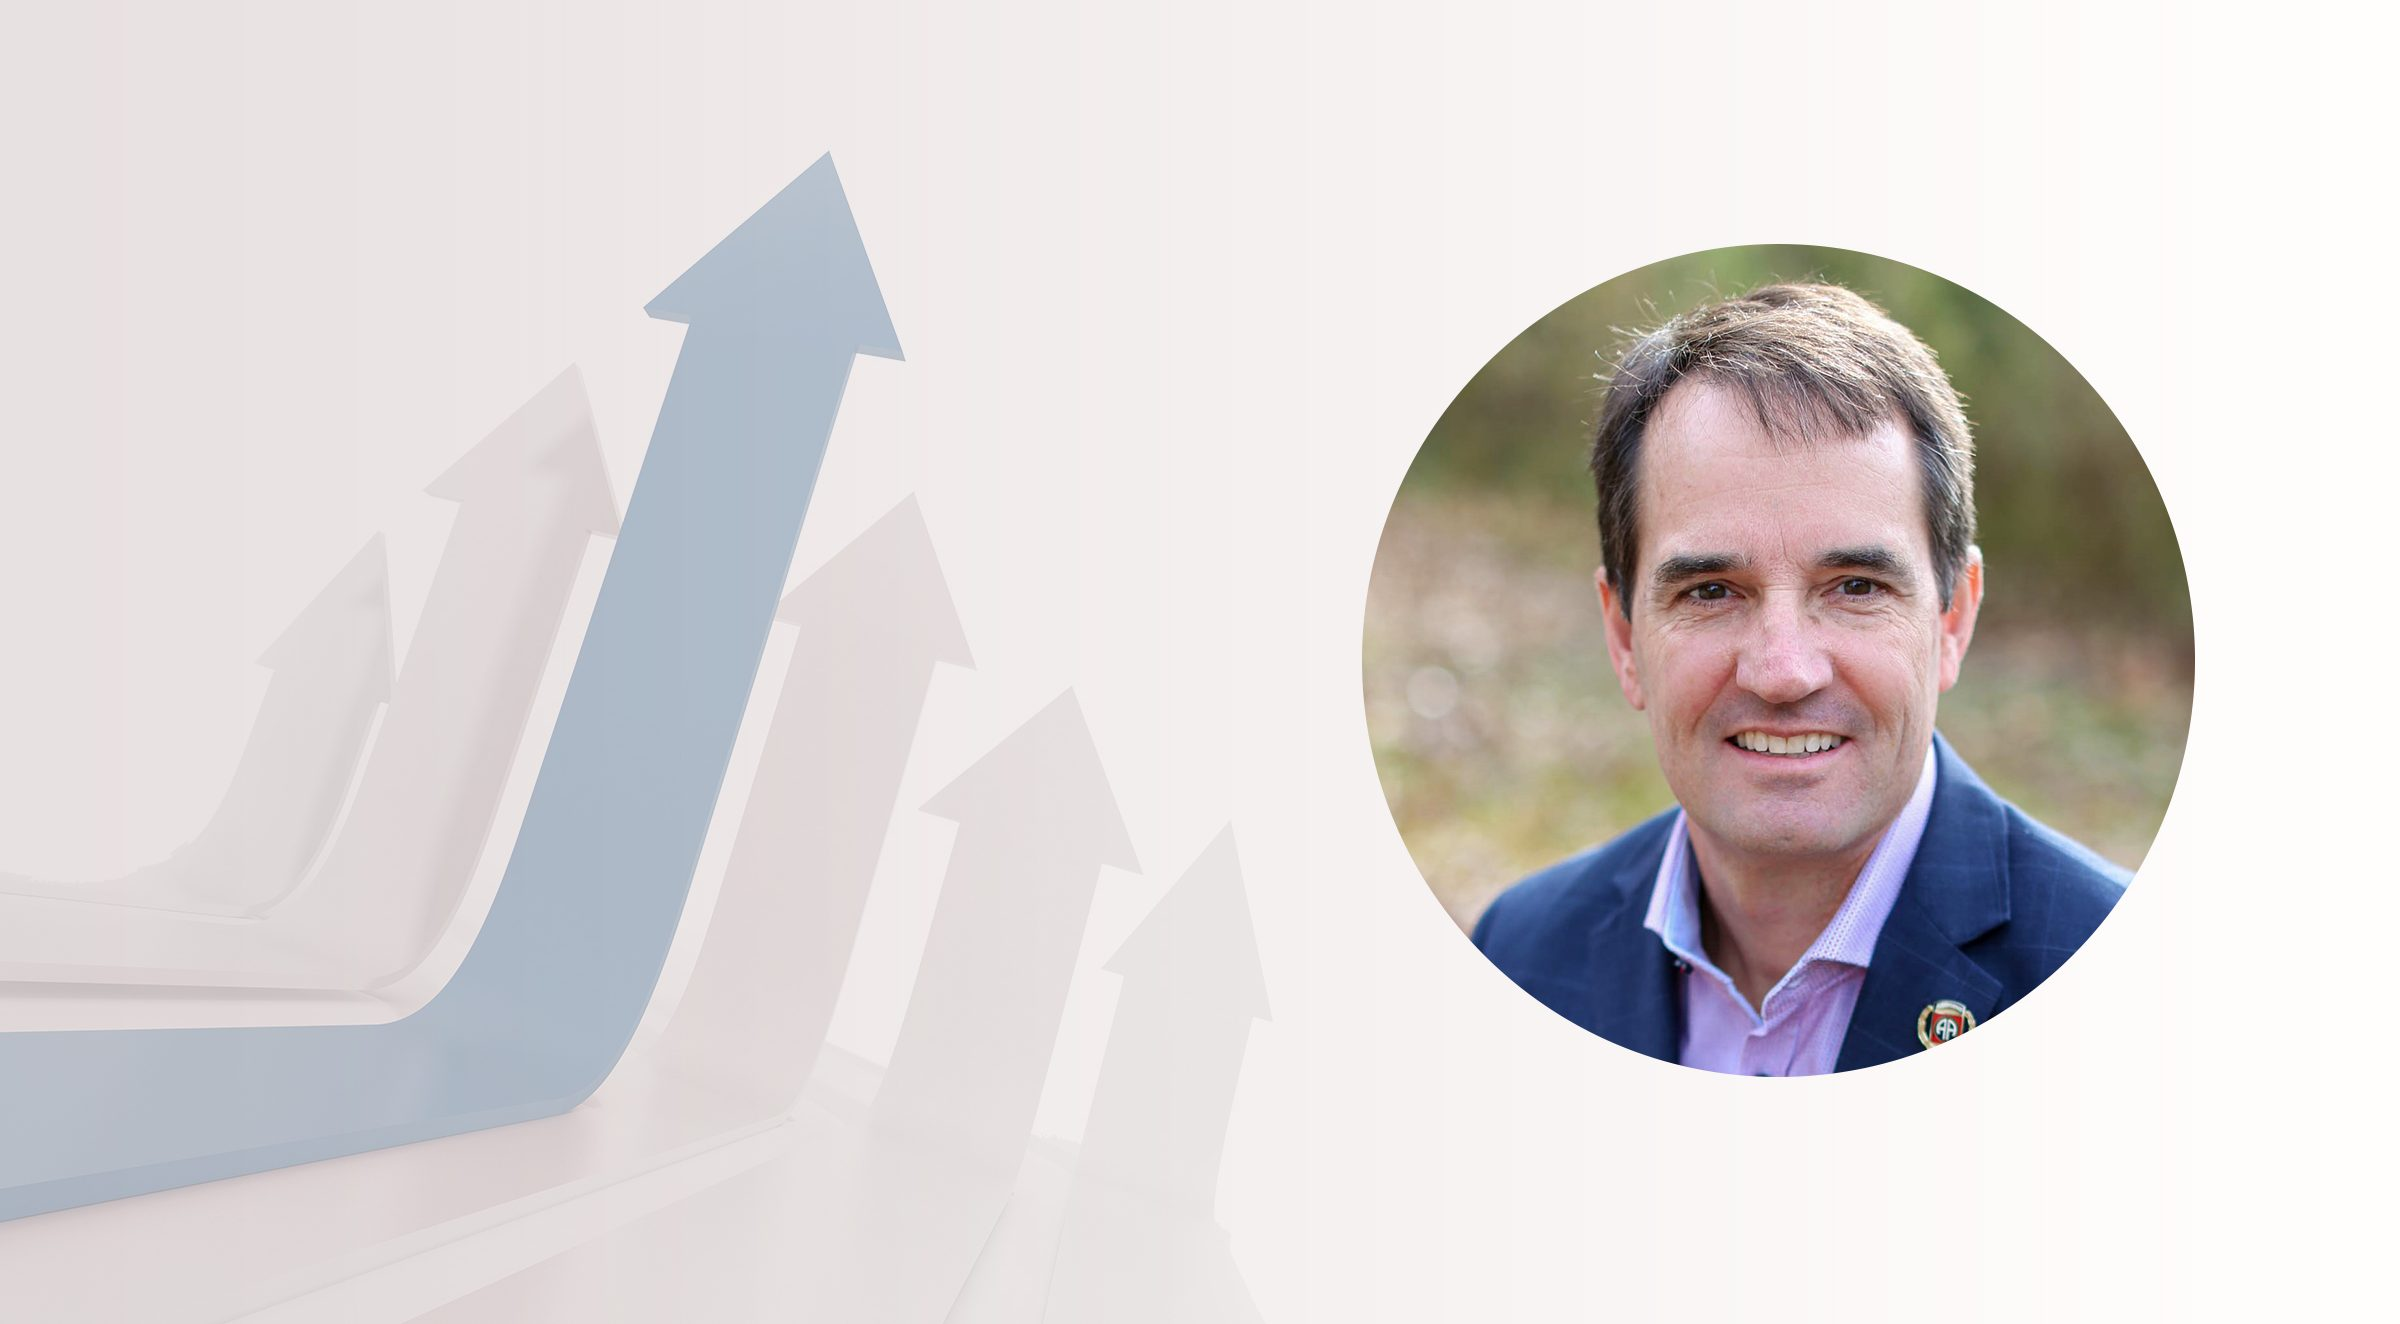 financial advisor success - an interview with sean fitts